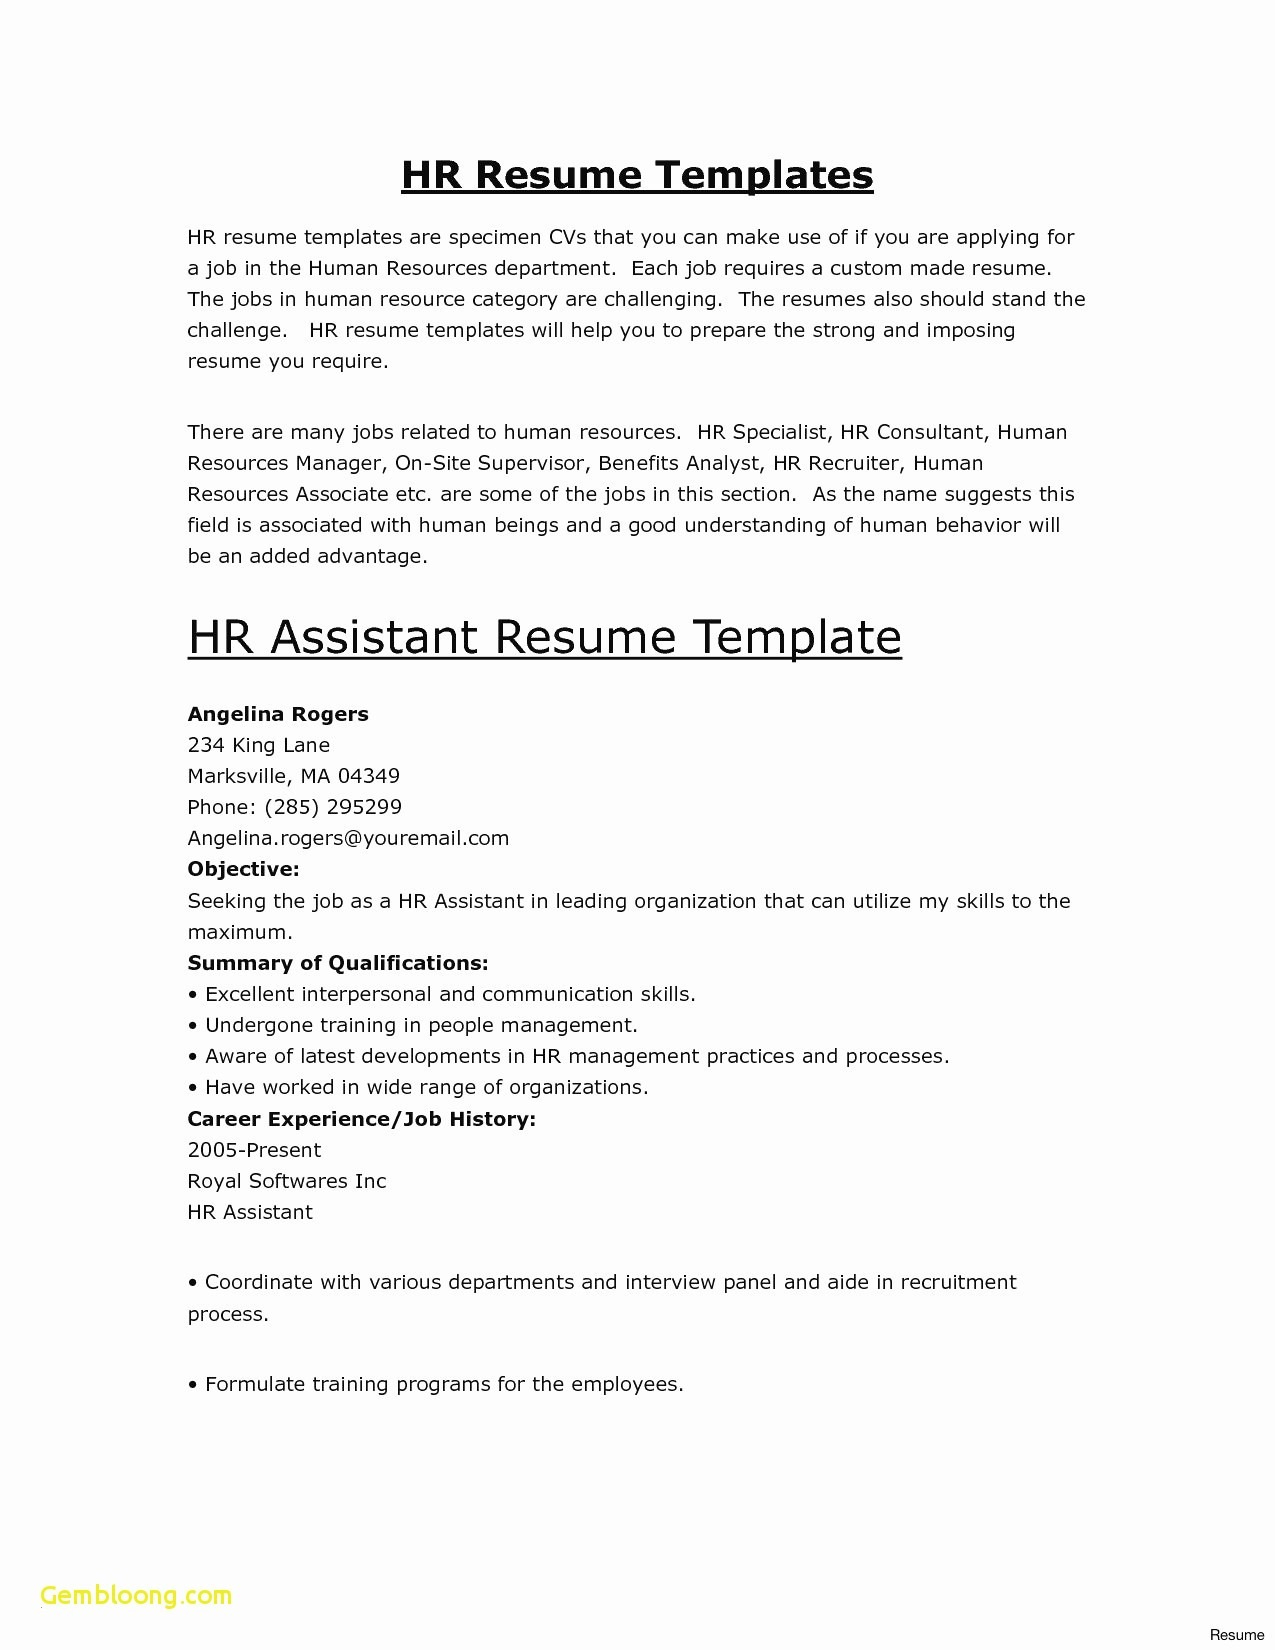 Teacher Resume Template Free Download - Teacher Resume Template Download Paragraphrewriter